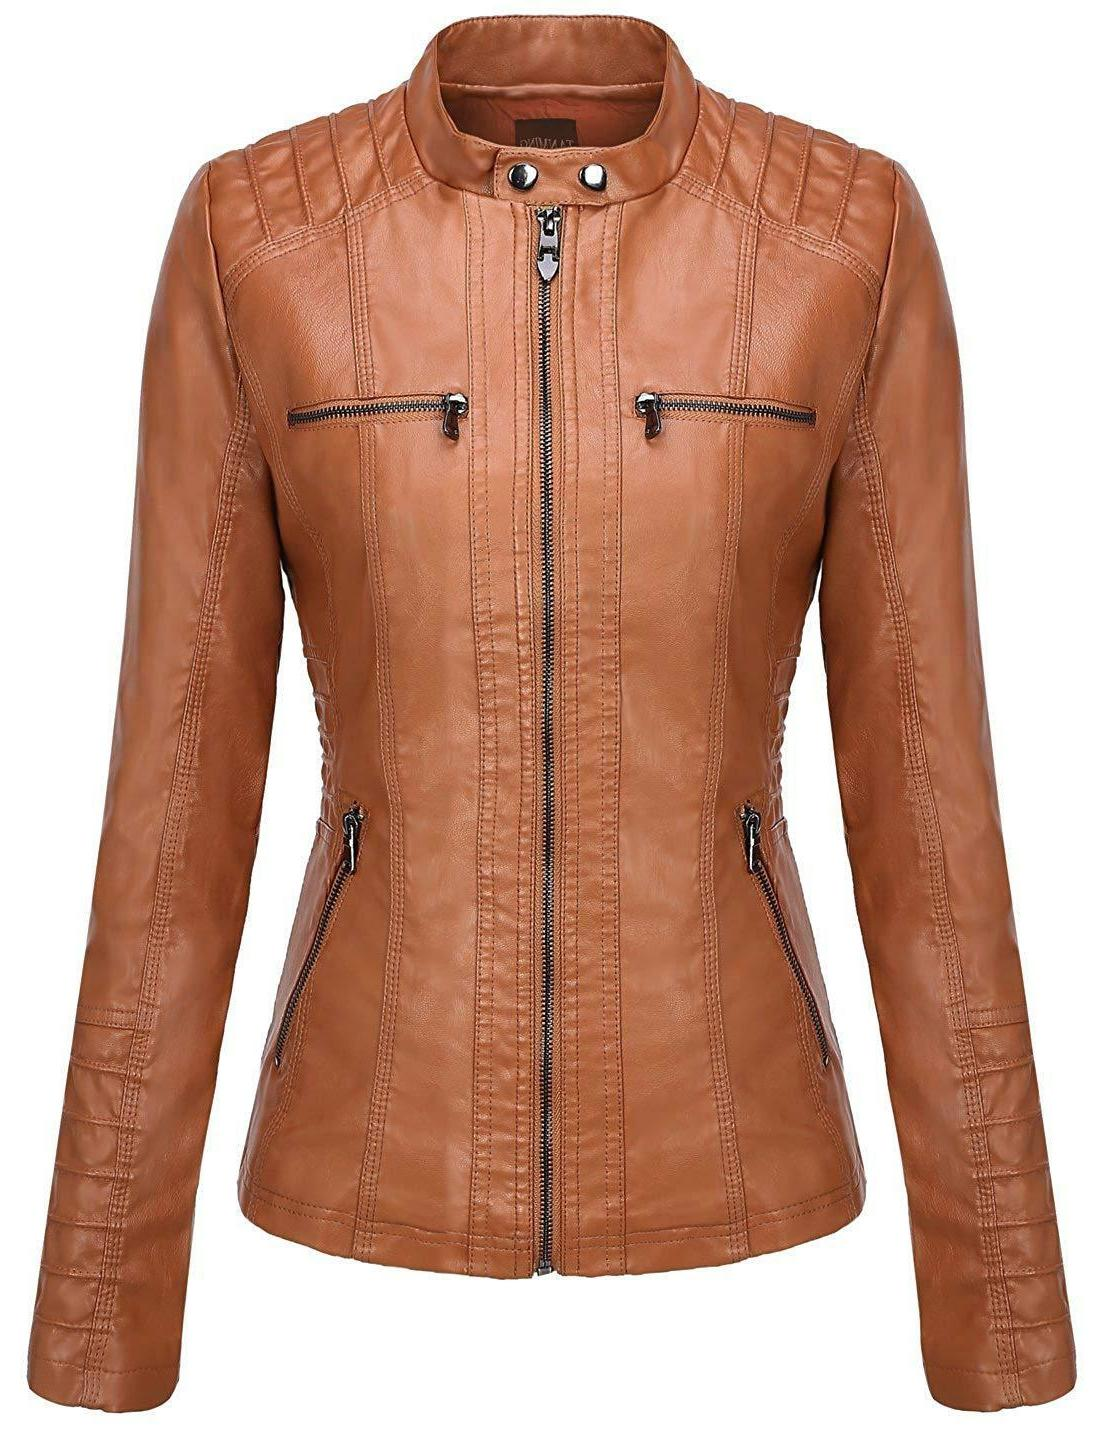 Tanming Women's Removable Faux Leather